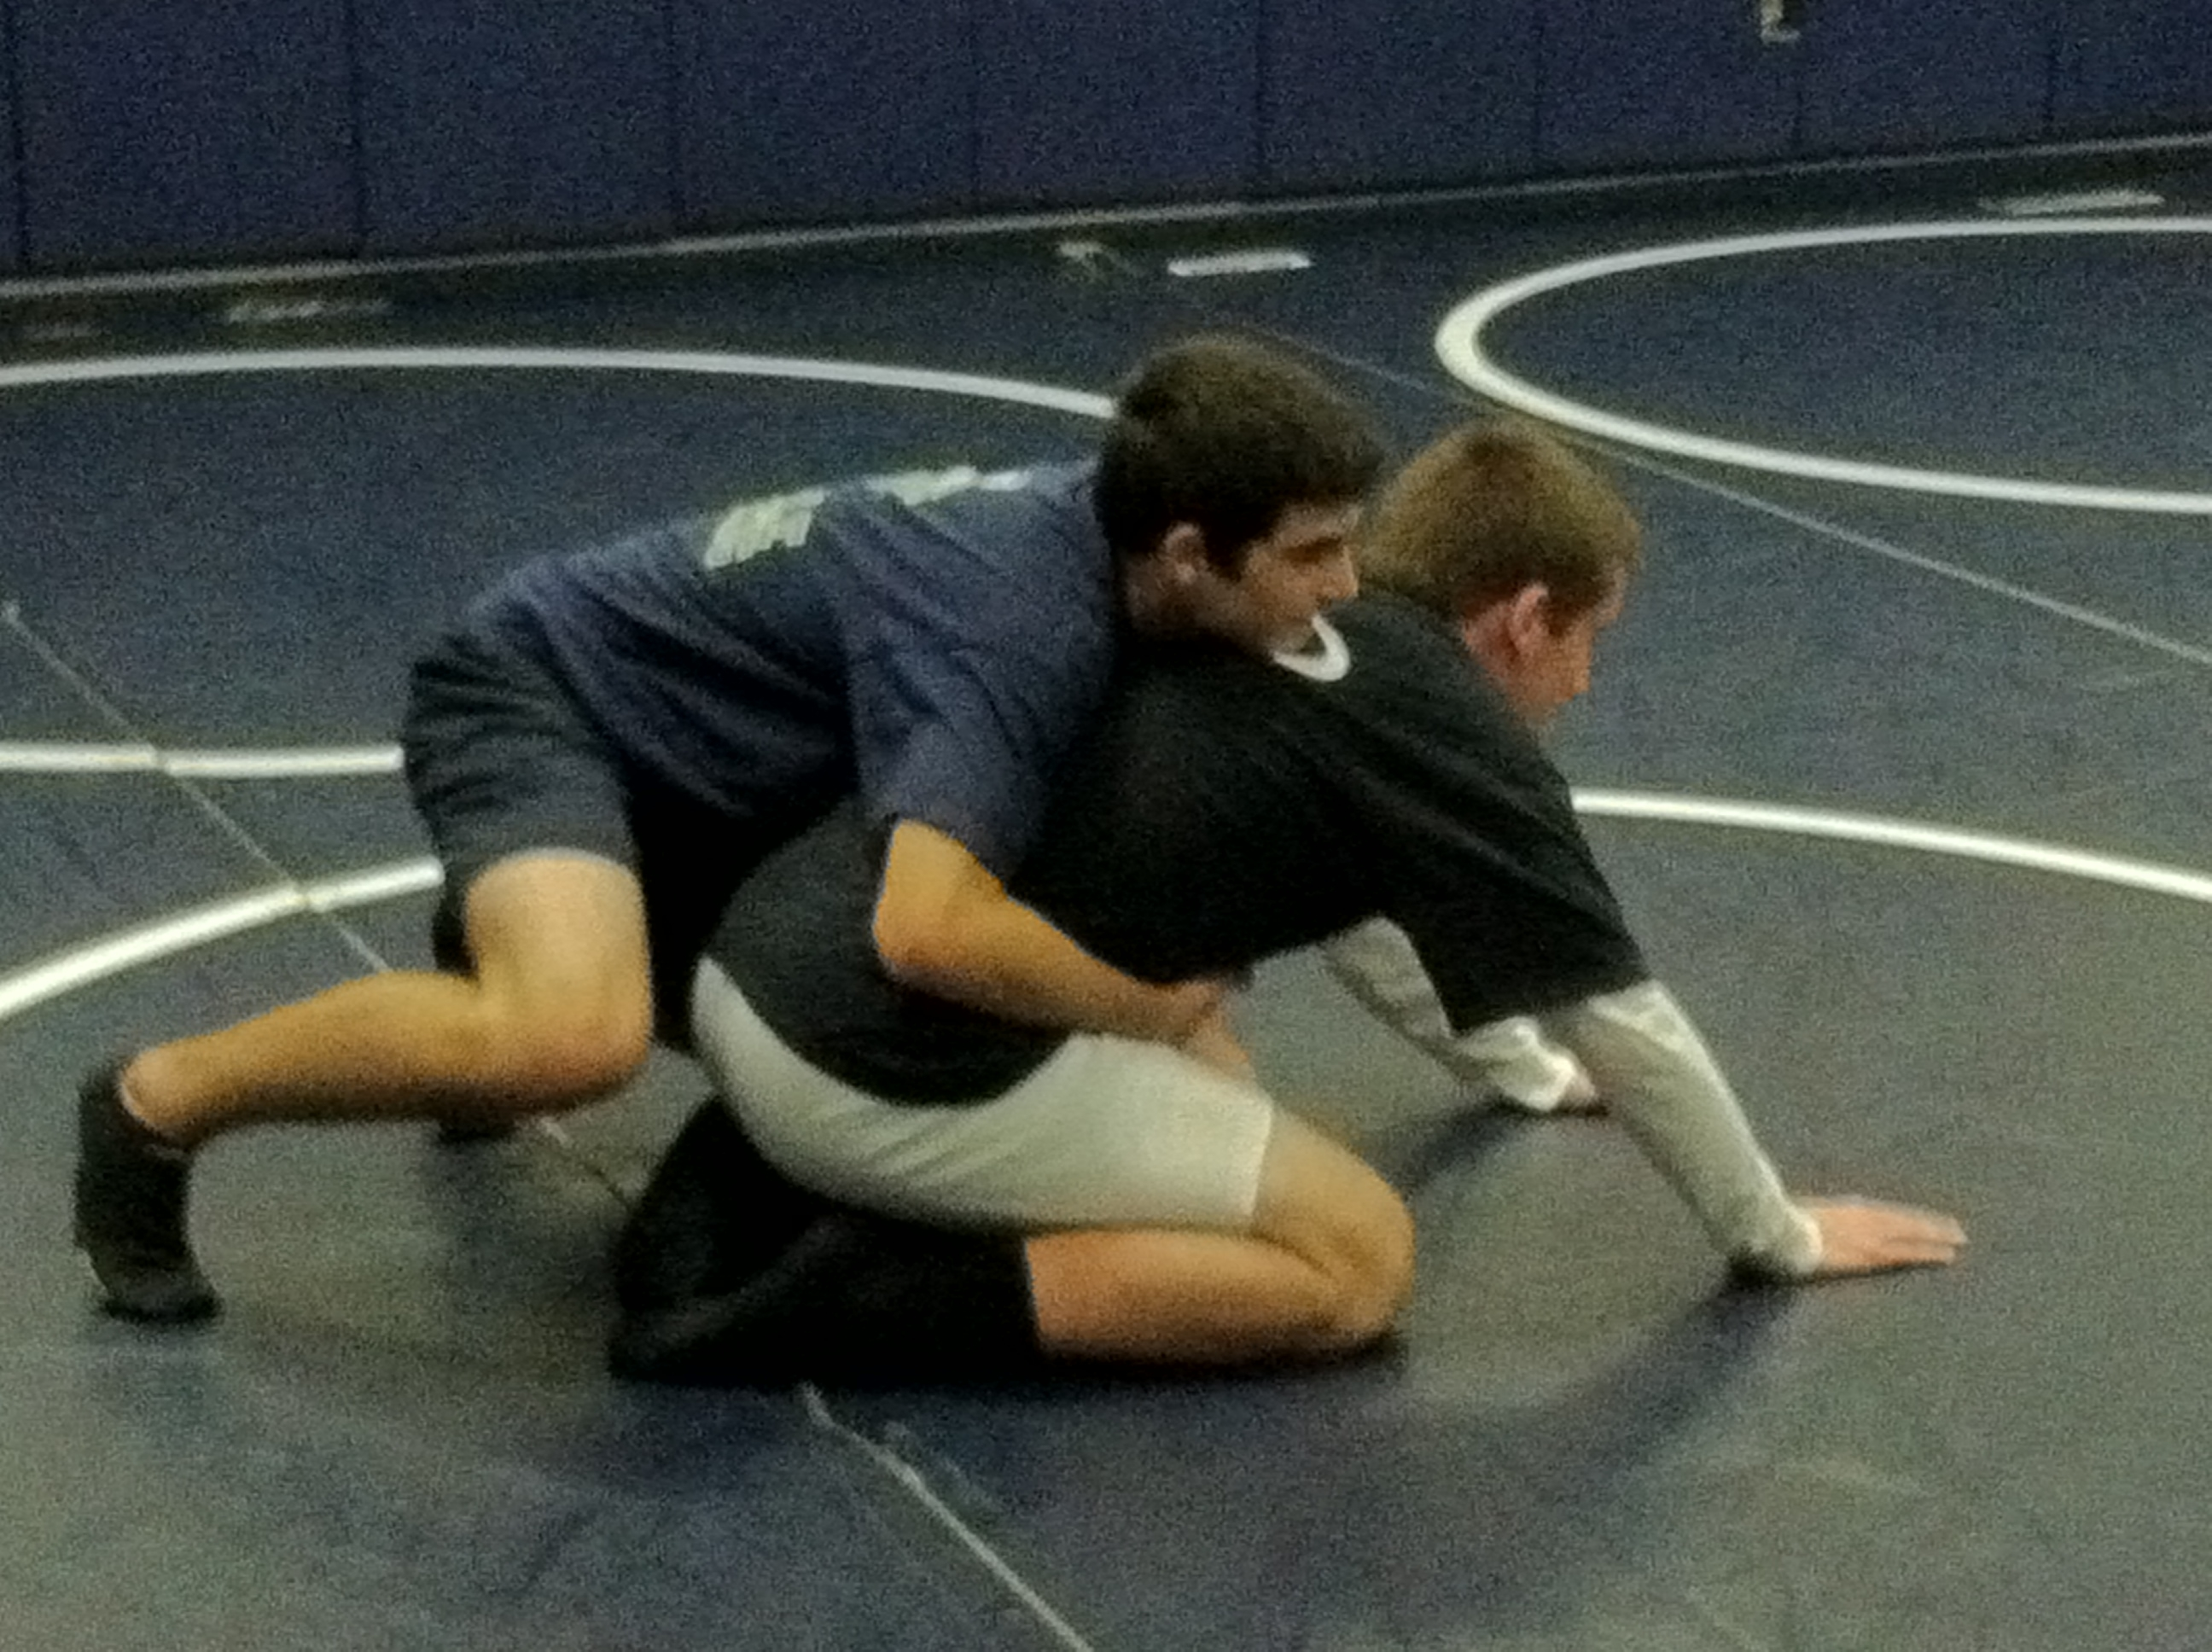 Jackson Tucker and Zach Cates practice their technique. The Leesville Road wrestling squad faces off against East Wake and Garner on December 2.